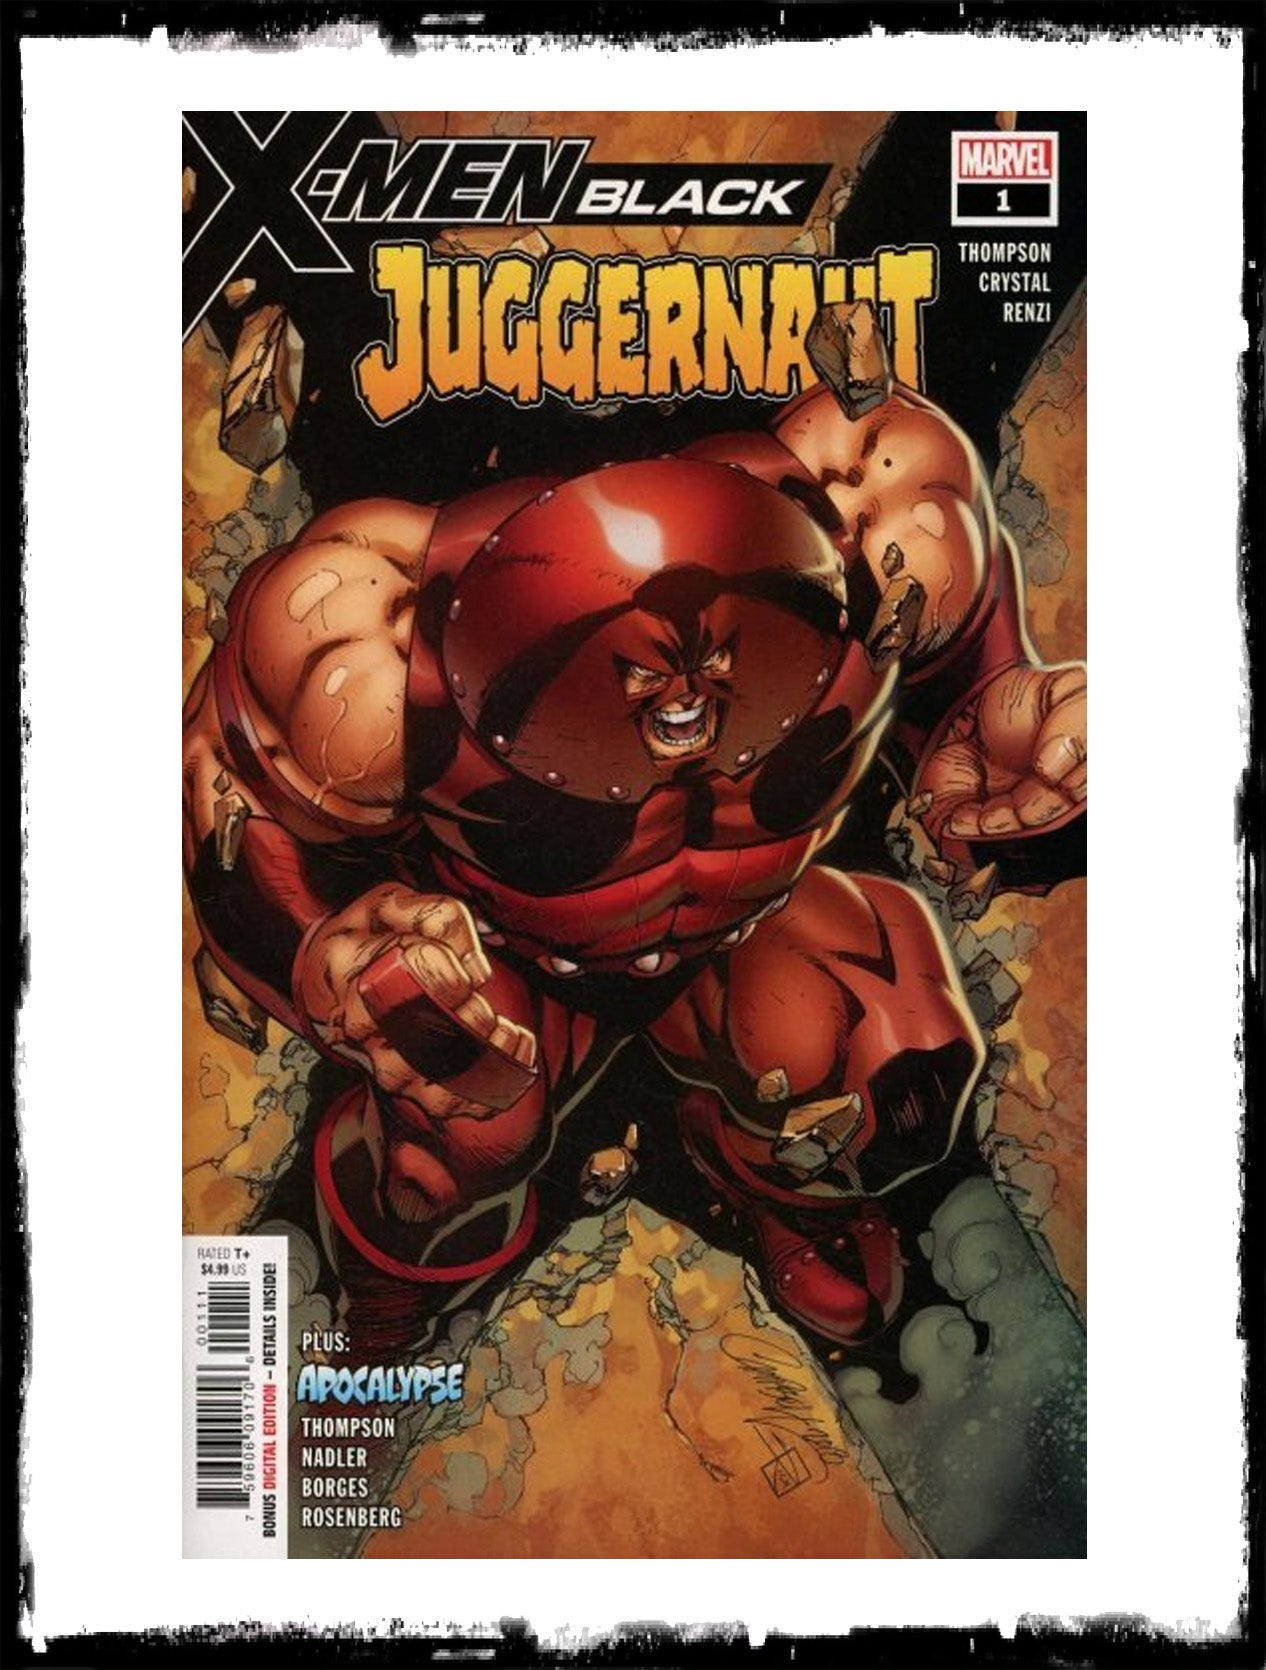 X-MEN BLACK: JUGGERNAUT - #1 J. SCOTT CAMPBELL COVER (2018 - VF+/NM)